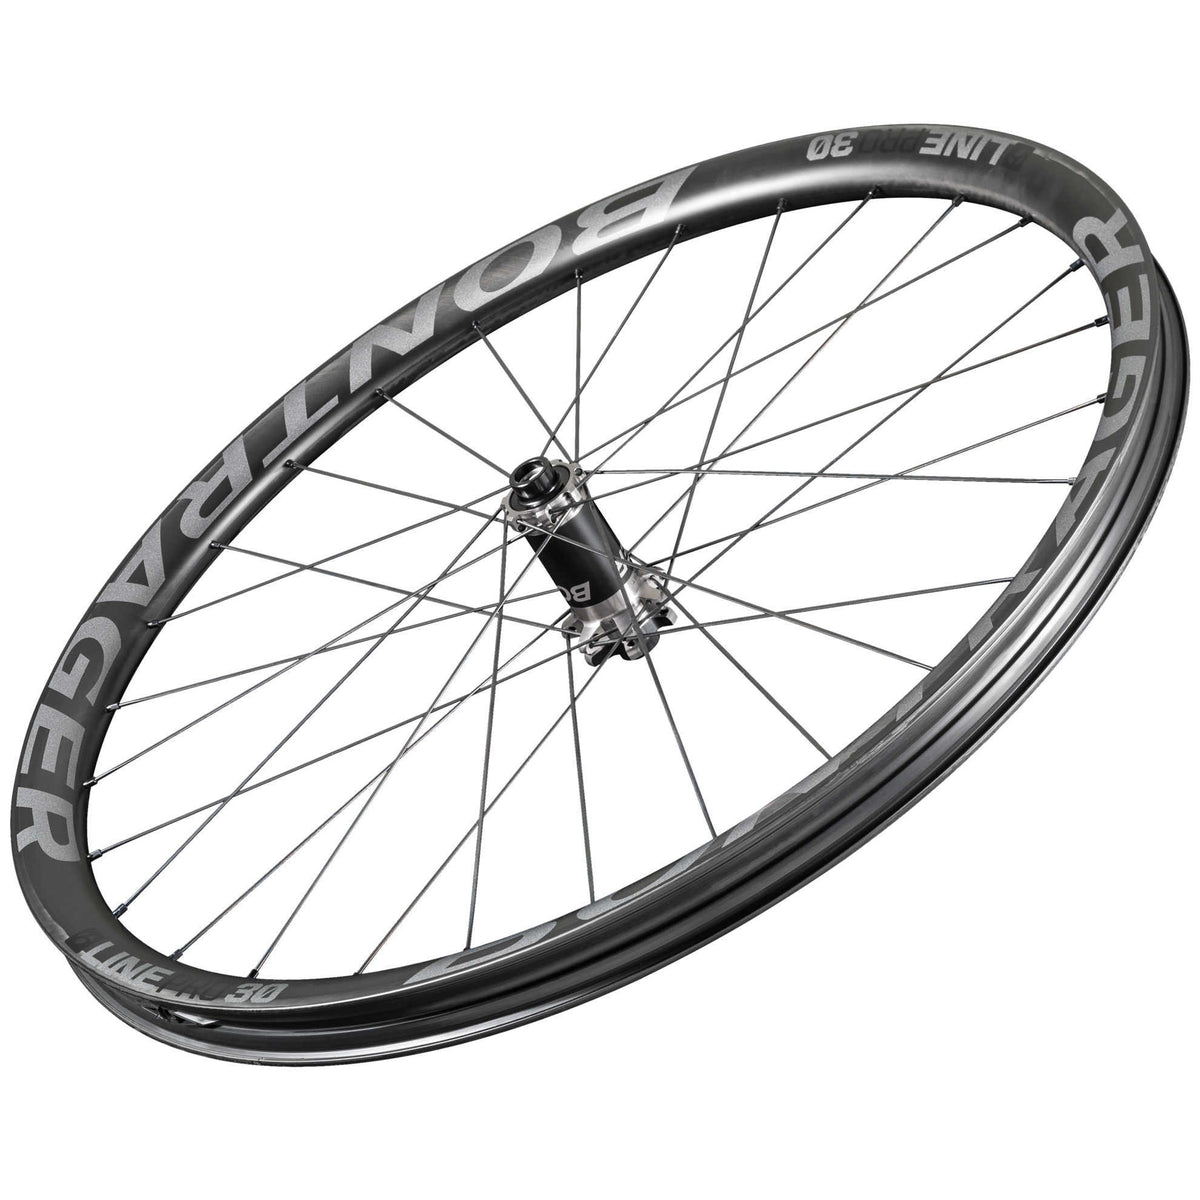 Bontrager Line Pro 30 Carbon Boost Wheels - Cycles Galleria Melbourne